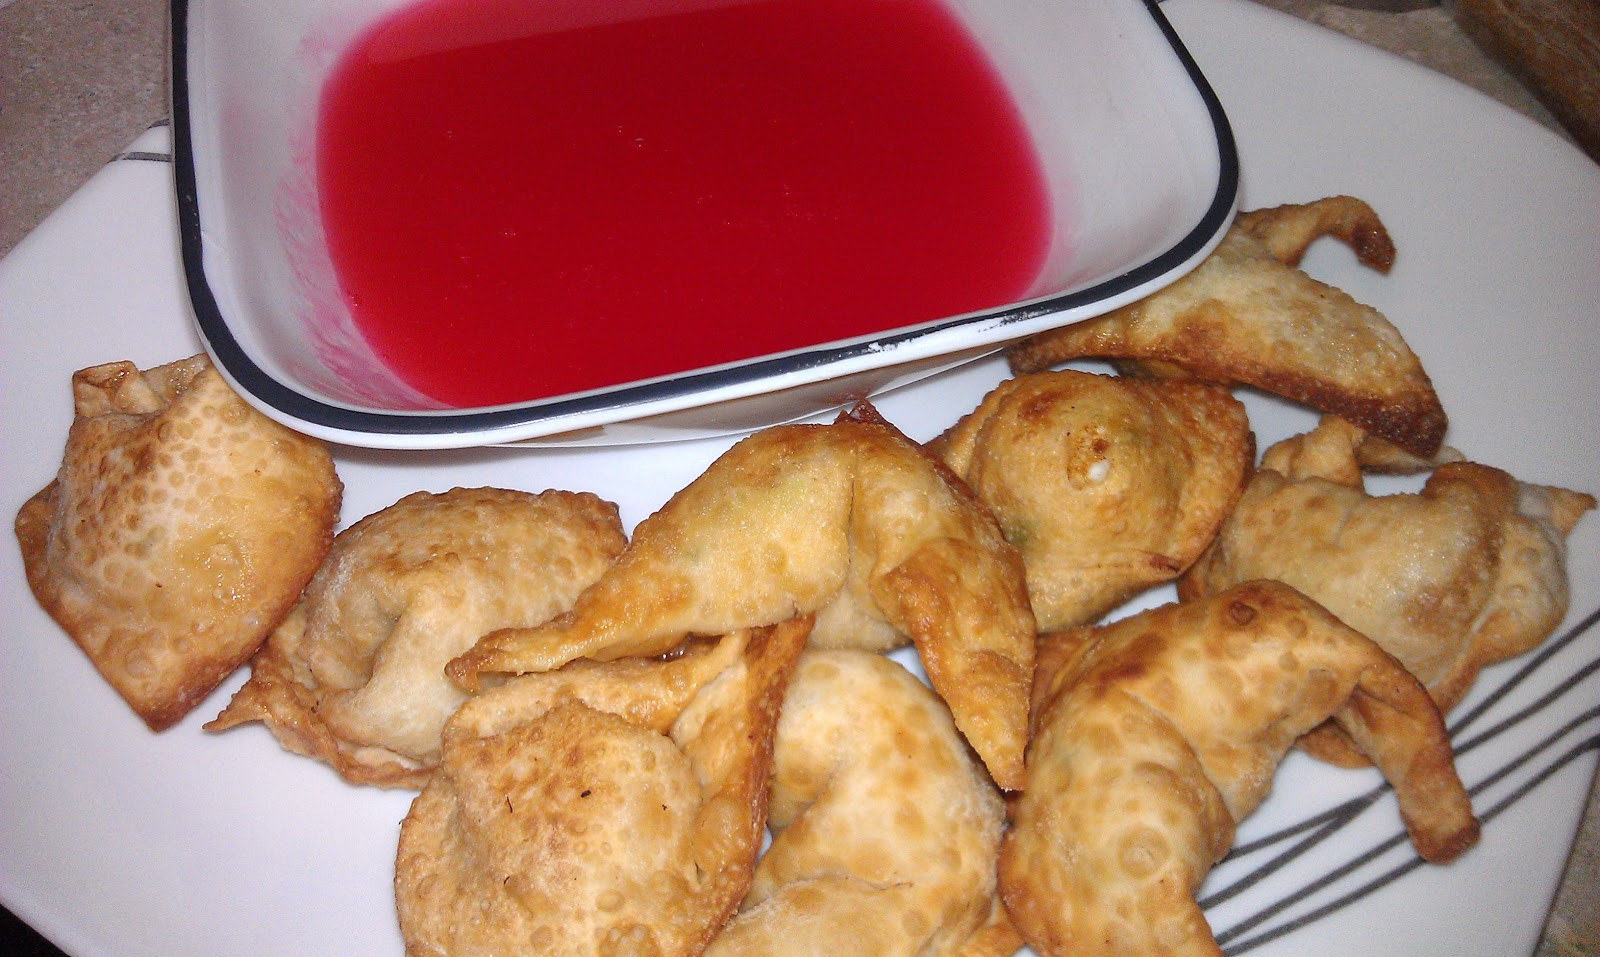 ... Love: Crab Rangoon (Cream Cheese Won tons) with Sweet and Sour Sauce